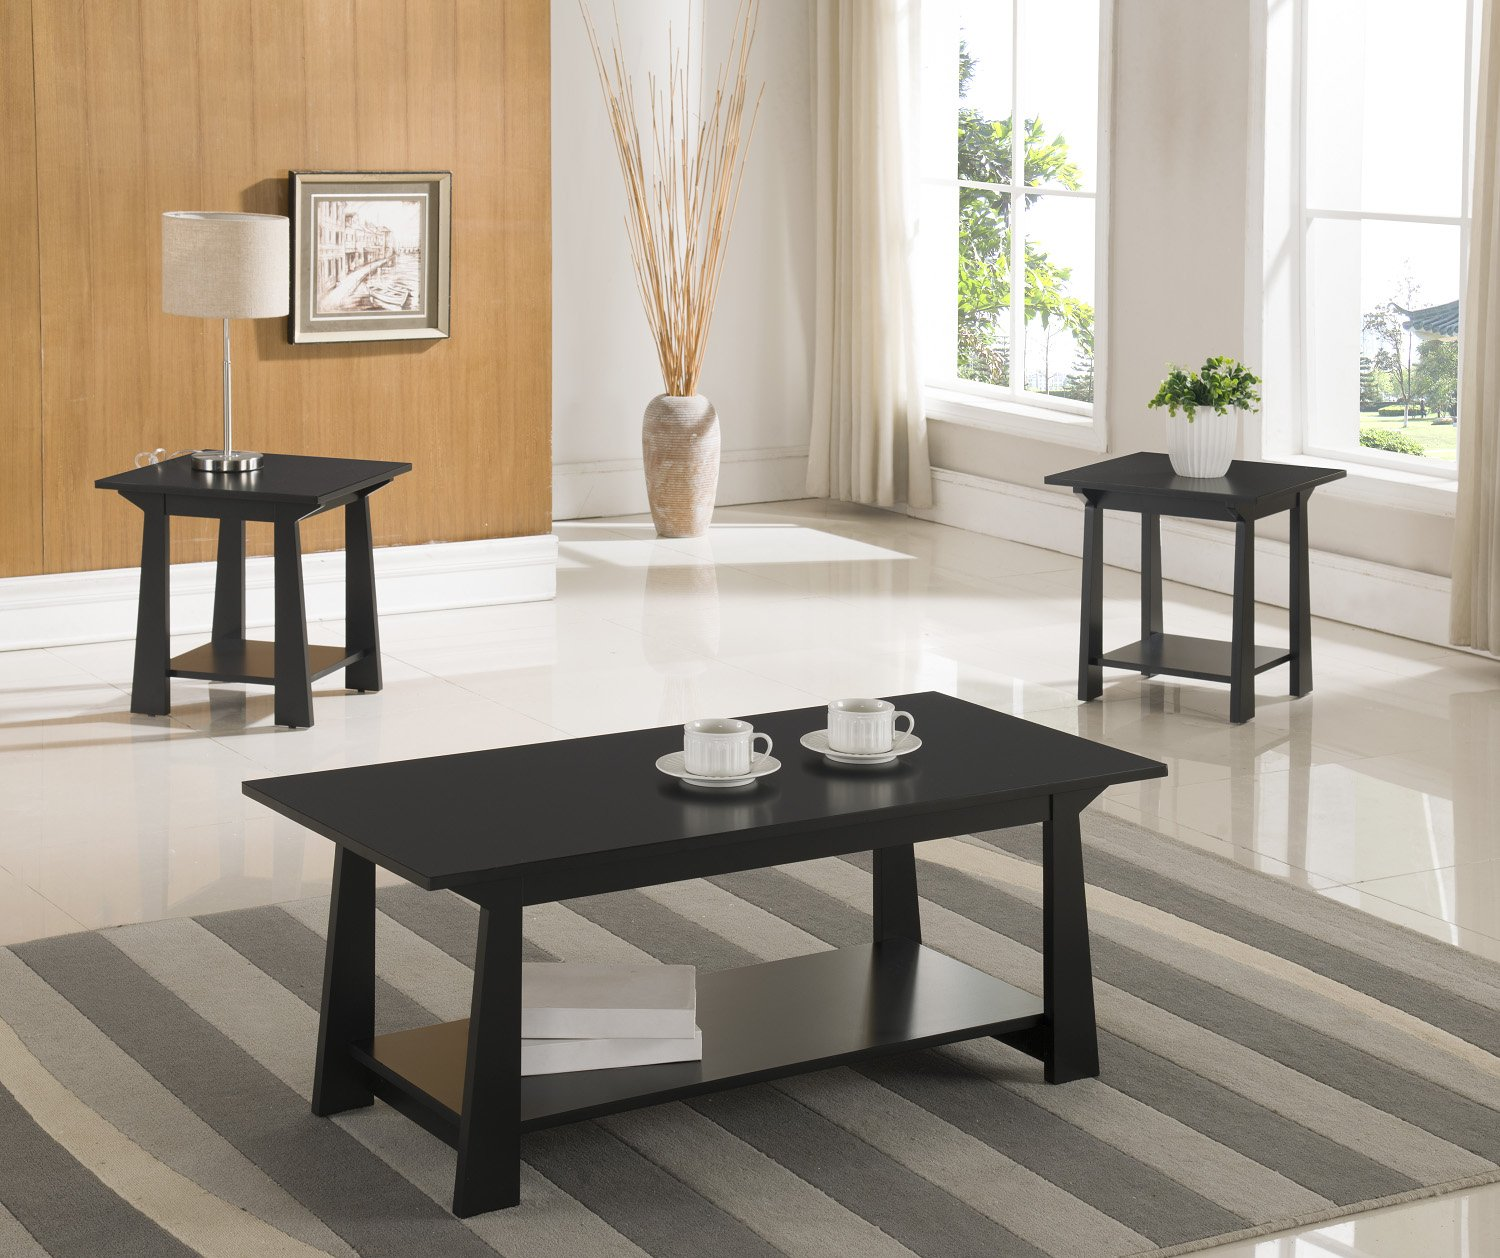 3-Piece Kings Brand Casual Coffee Table & 2 End Tables Occasional Set, Black Finish Wood by Kings Brand Furniture